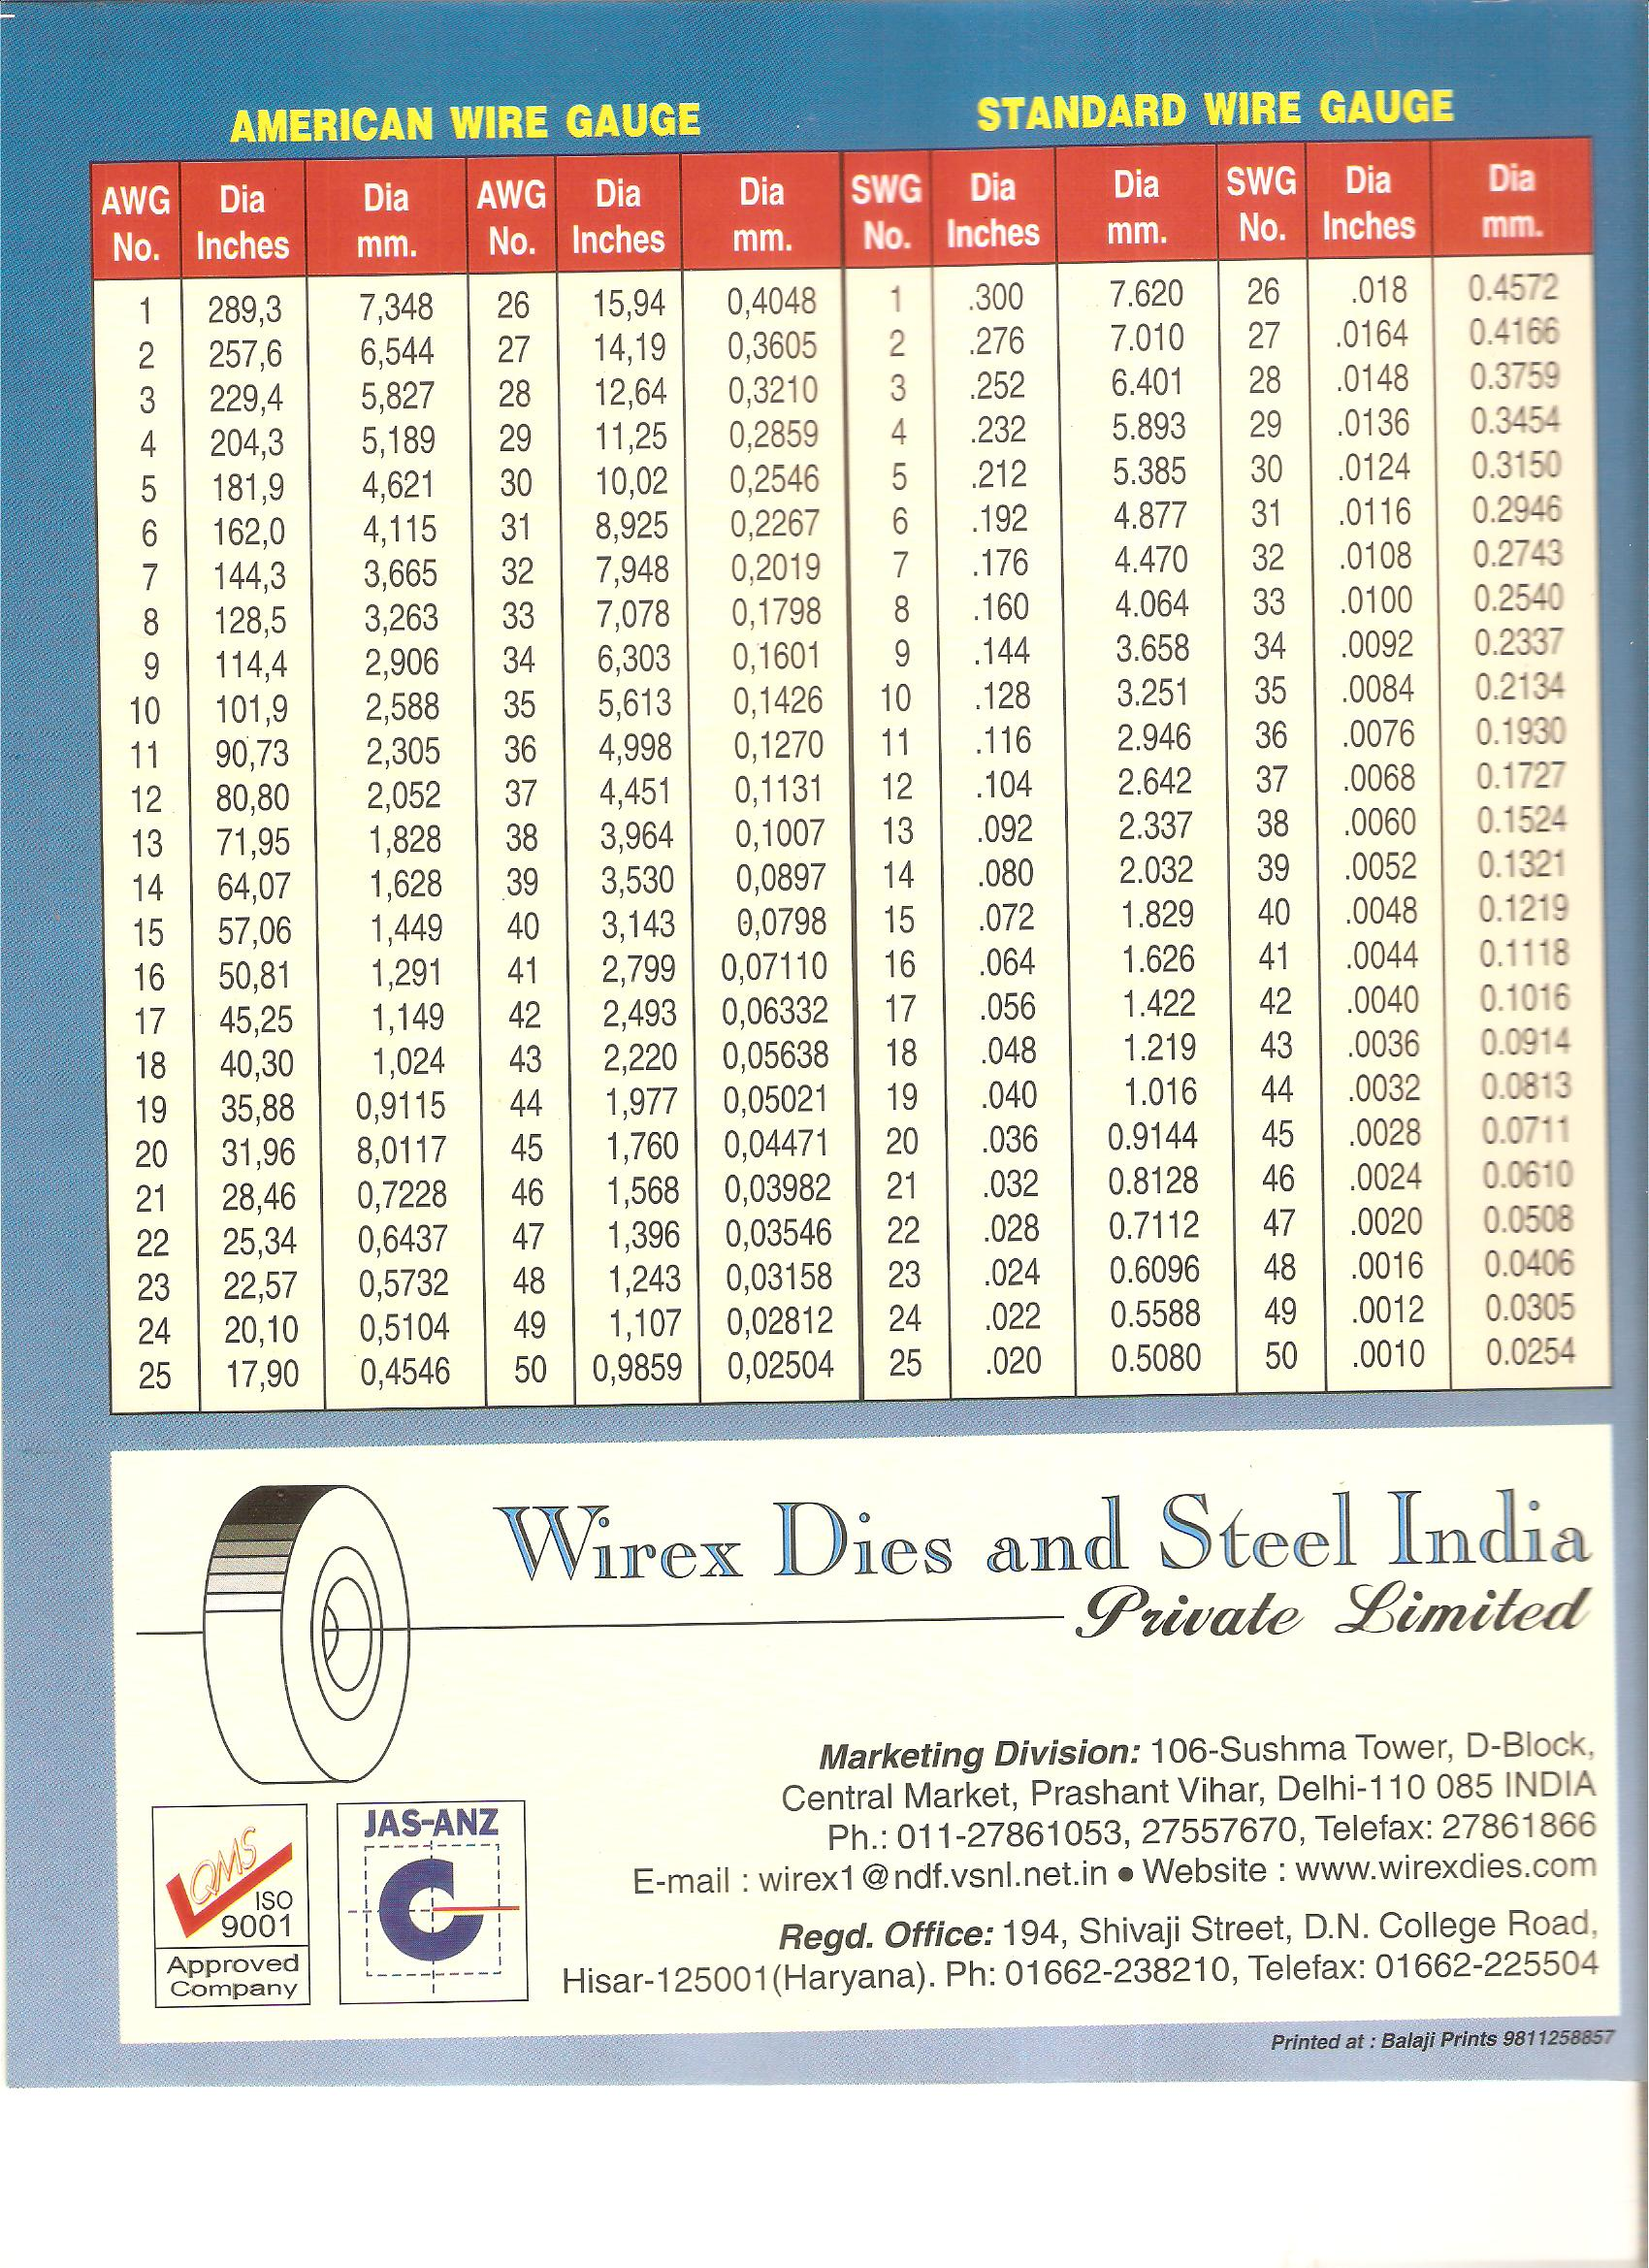 Wirex dies and steel india pvt ltd download pdf greentooth Choice Image